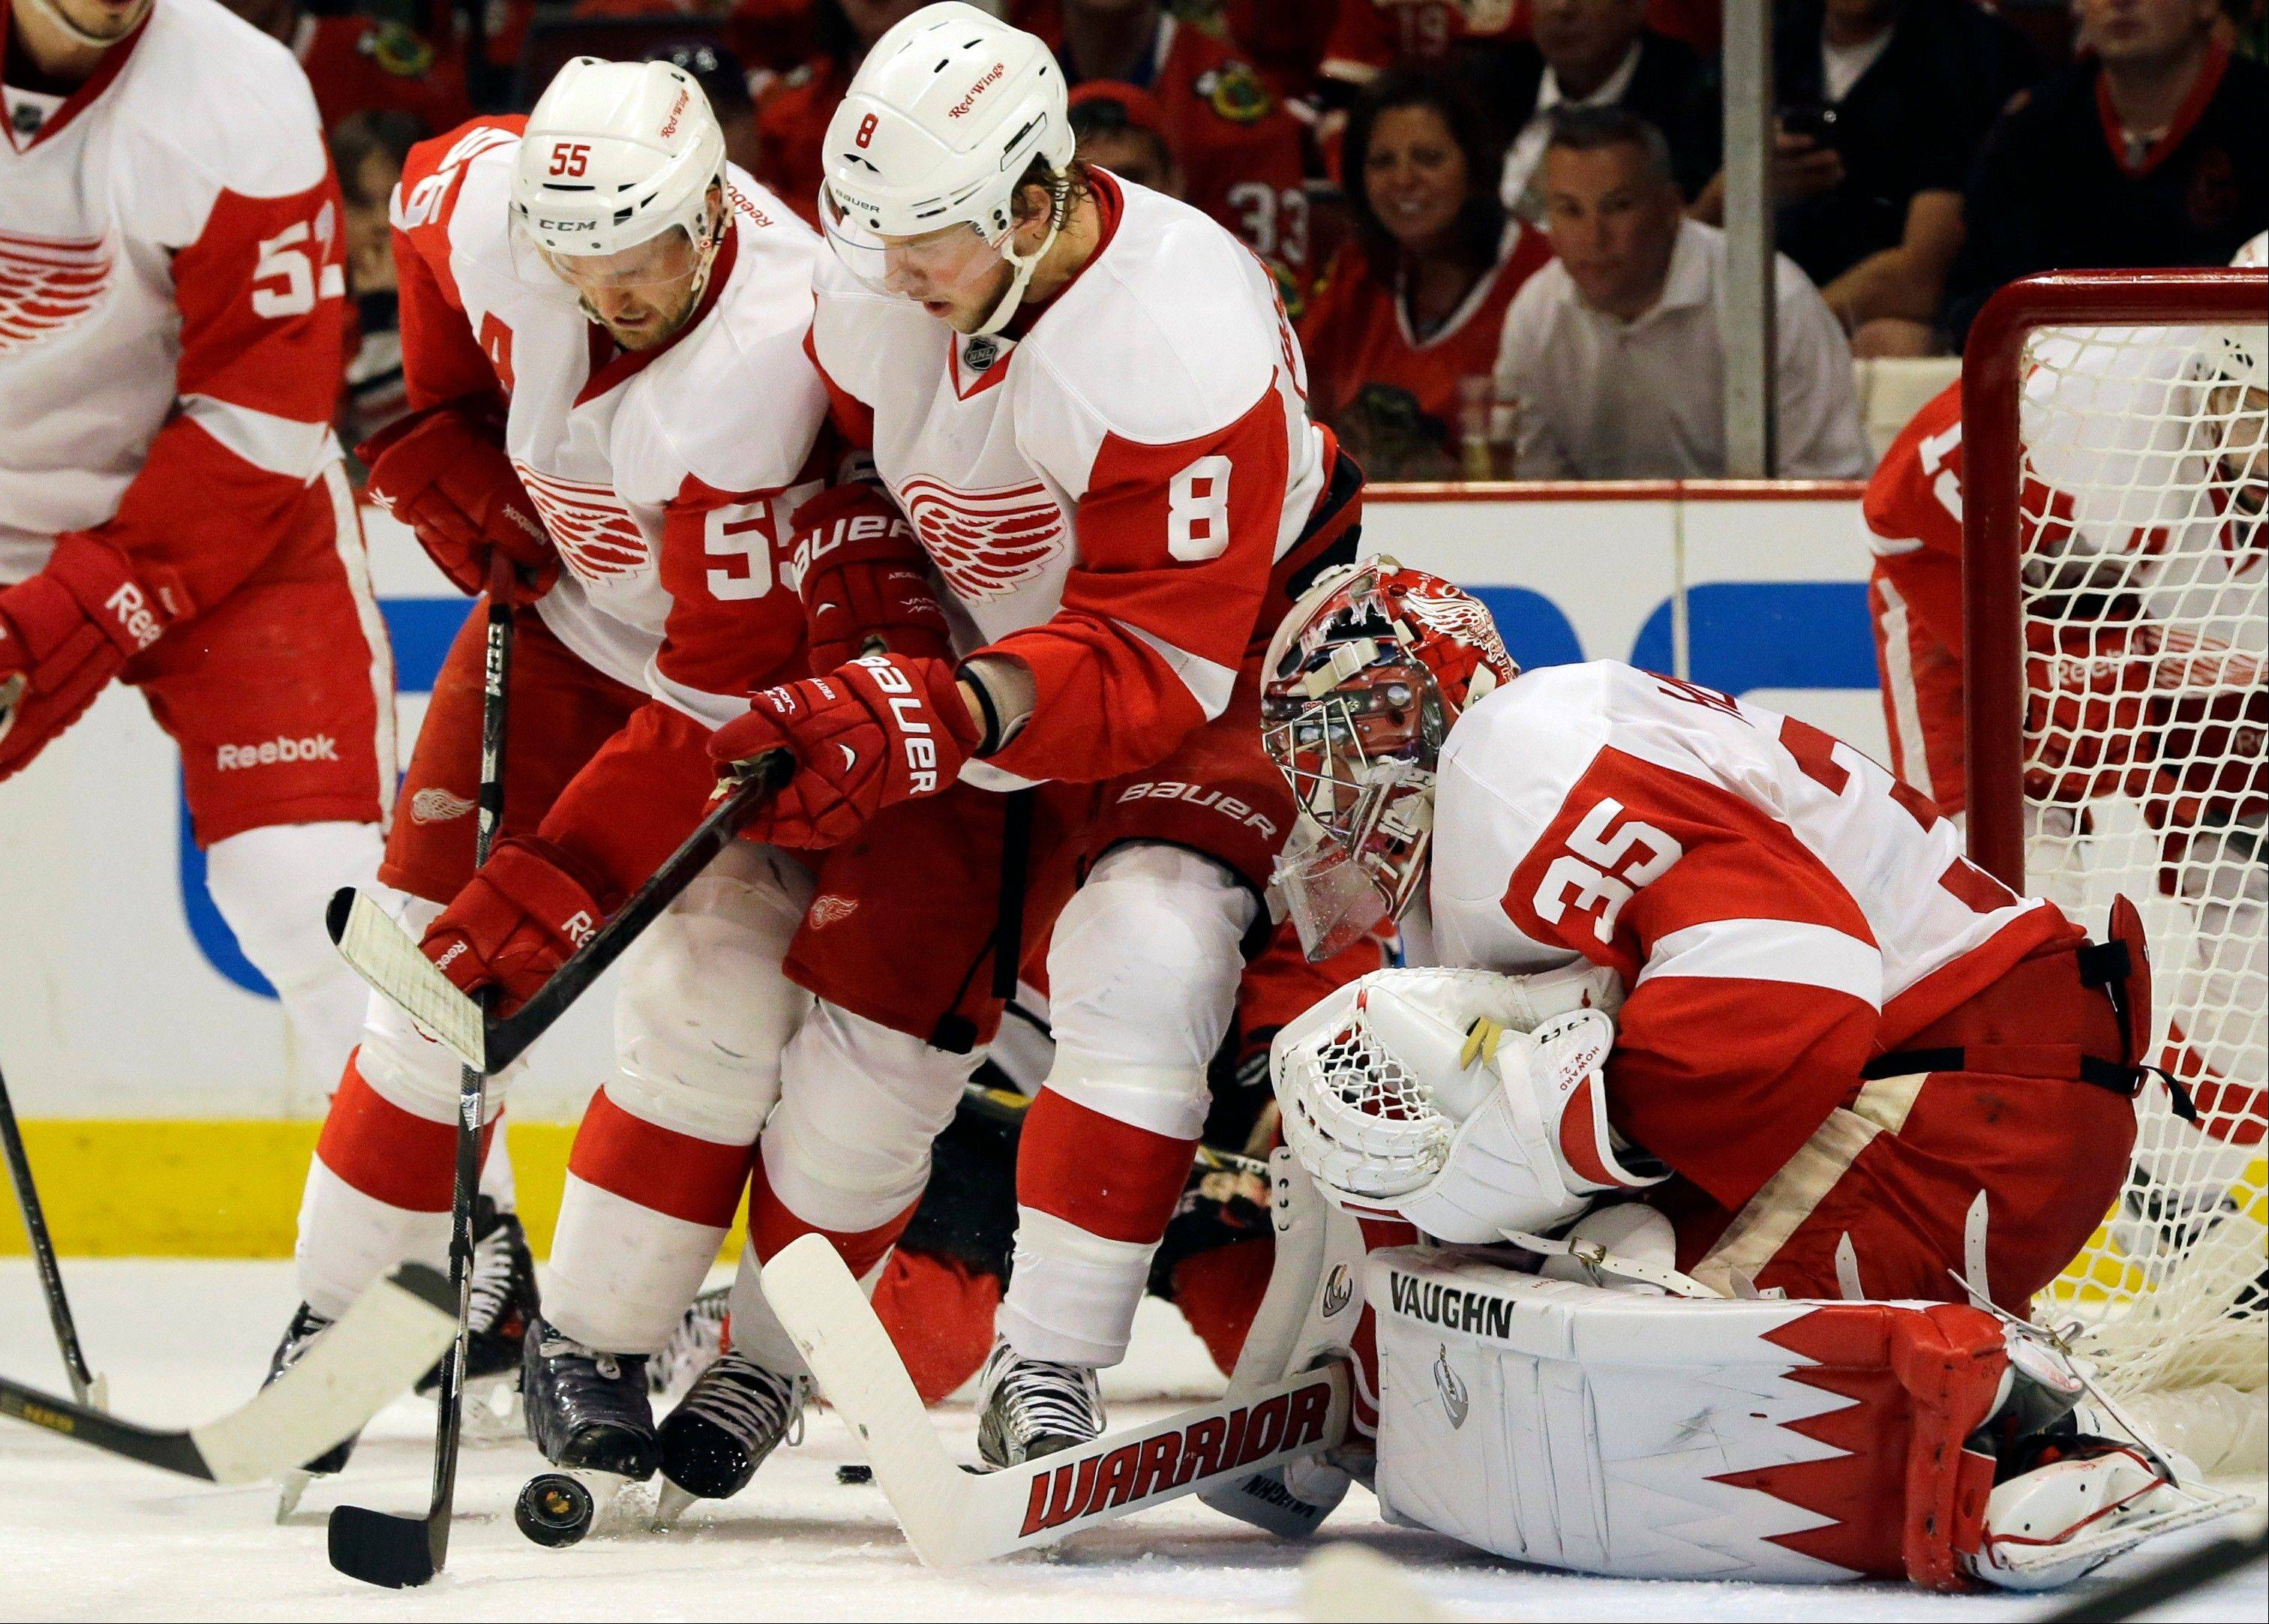 Detroit Red Wings goalie Jimmy Howard (35) blocks a shot as teammates Justin Abdelkader (8) and Niklas Kronwall (55) look on during the second period of Game 1 of an NHL hockey playoffs Western Conference semifinal against the Chicago Blackhawks in Chicago, Wednesday, May 15, 2013.